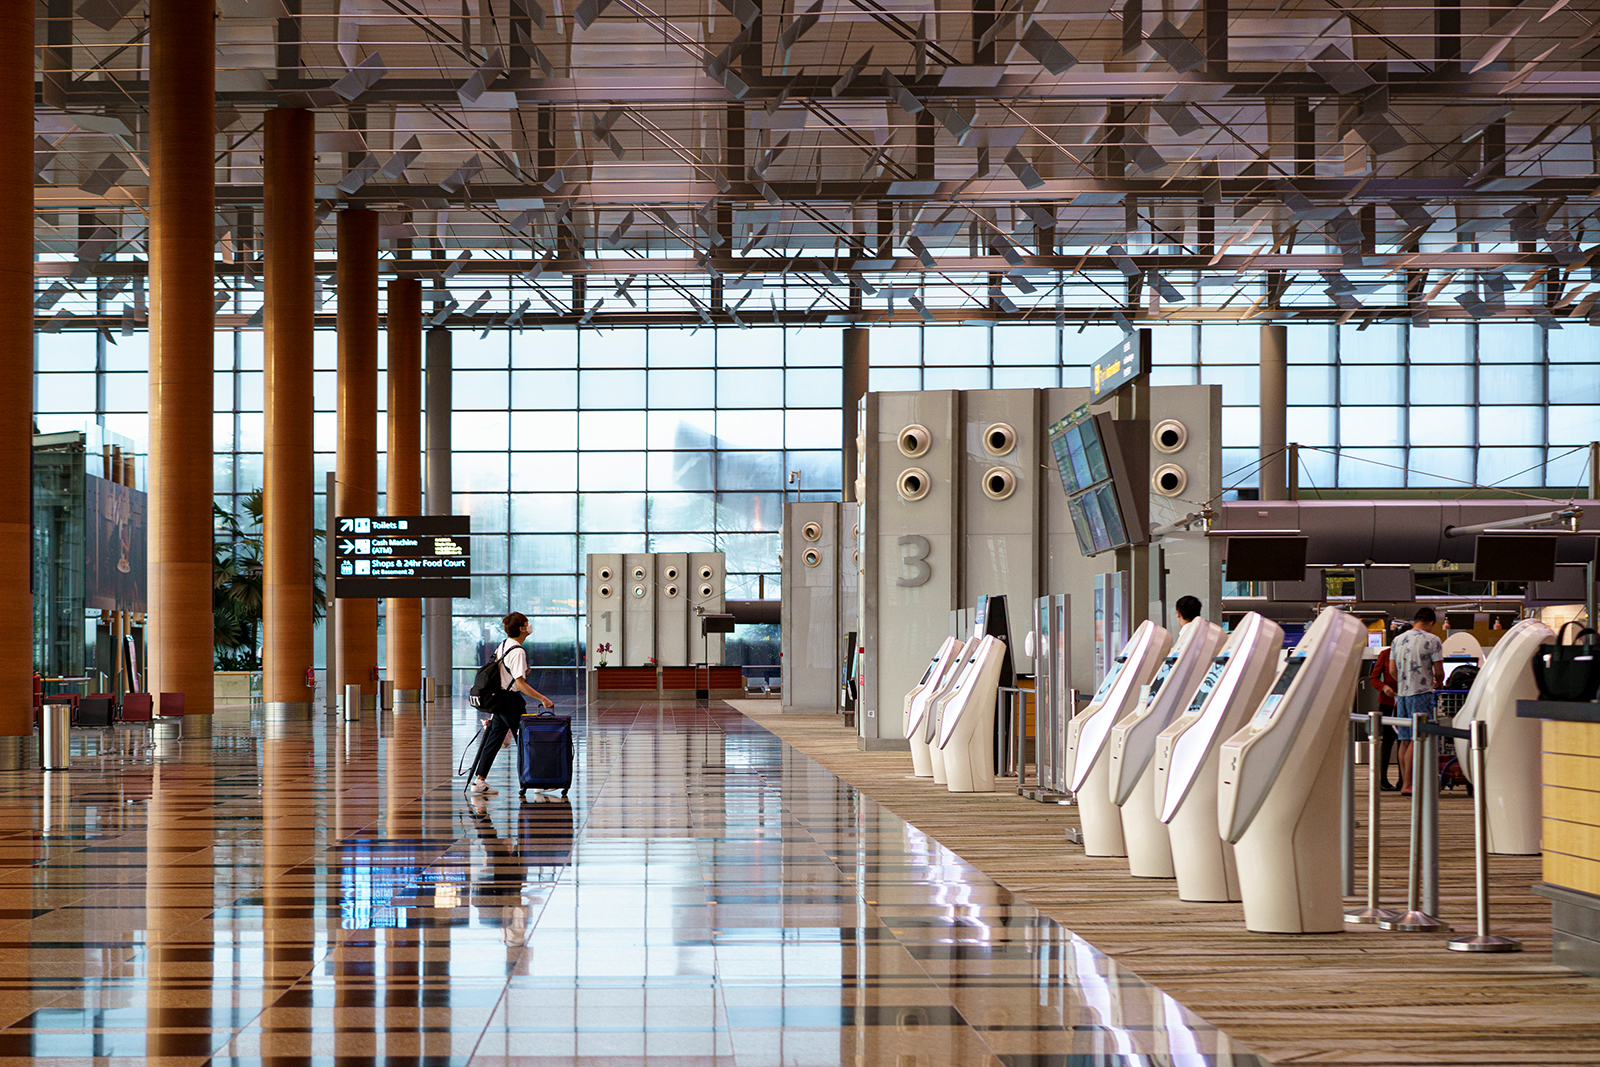 A traveler arrives at the departure hall of Changi Airport Terminal 3 in Singapore, on November 11.